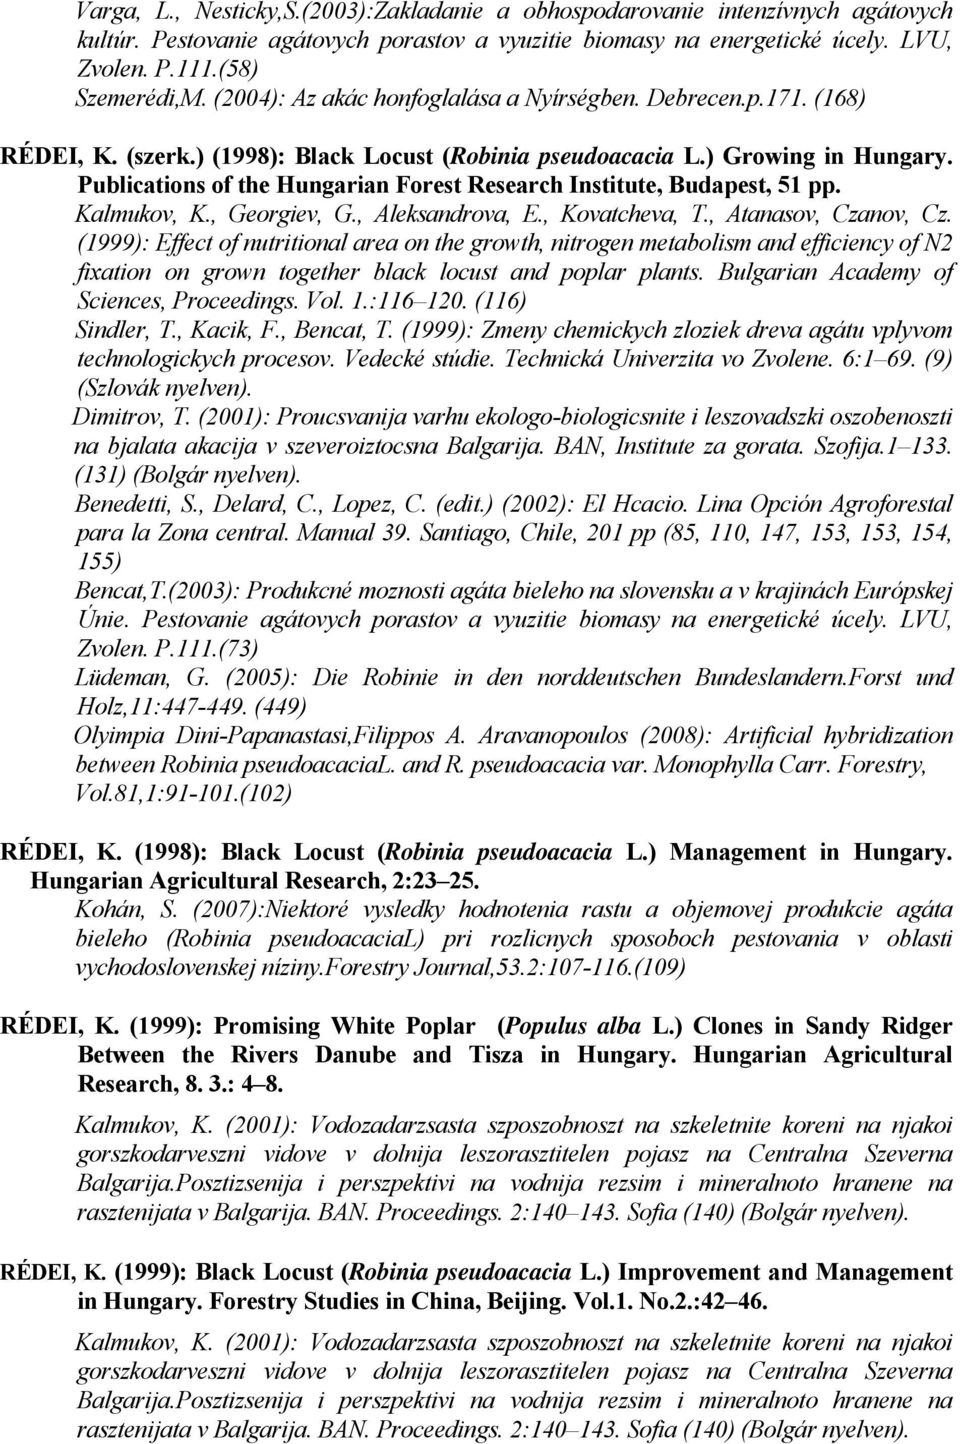 Publications of the Hungarian Forest Research Institute, Budapest, 51 pp. Kalmukov, K., Georgiev, G., Aleksandrova, E., Kovatcheva, T., Atanasov, Czanov, Cz.